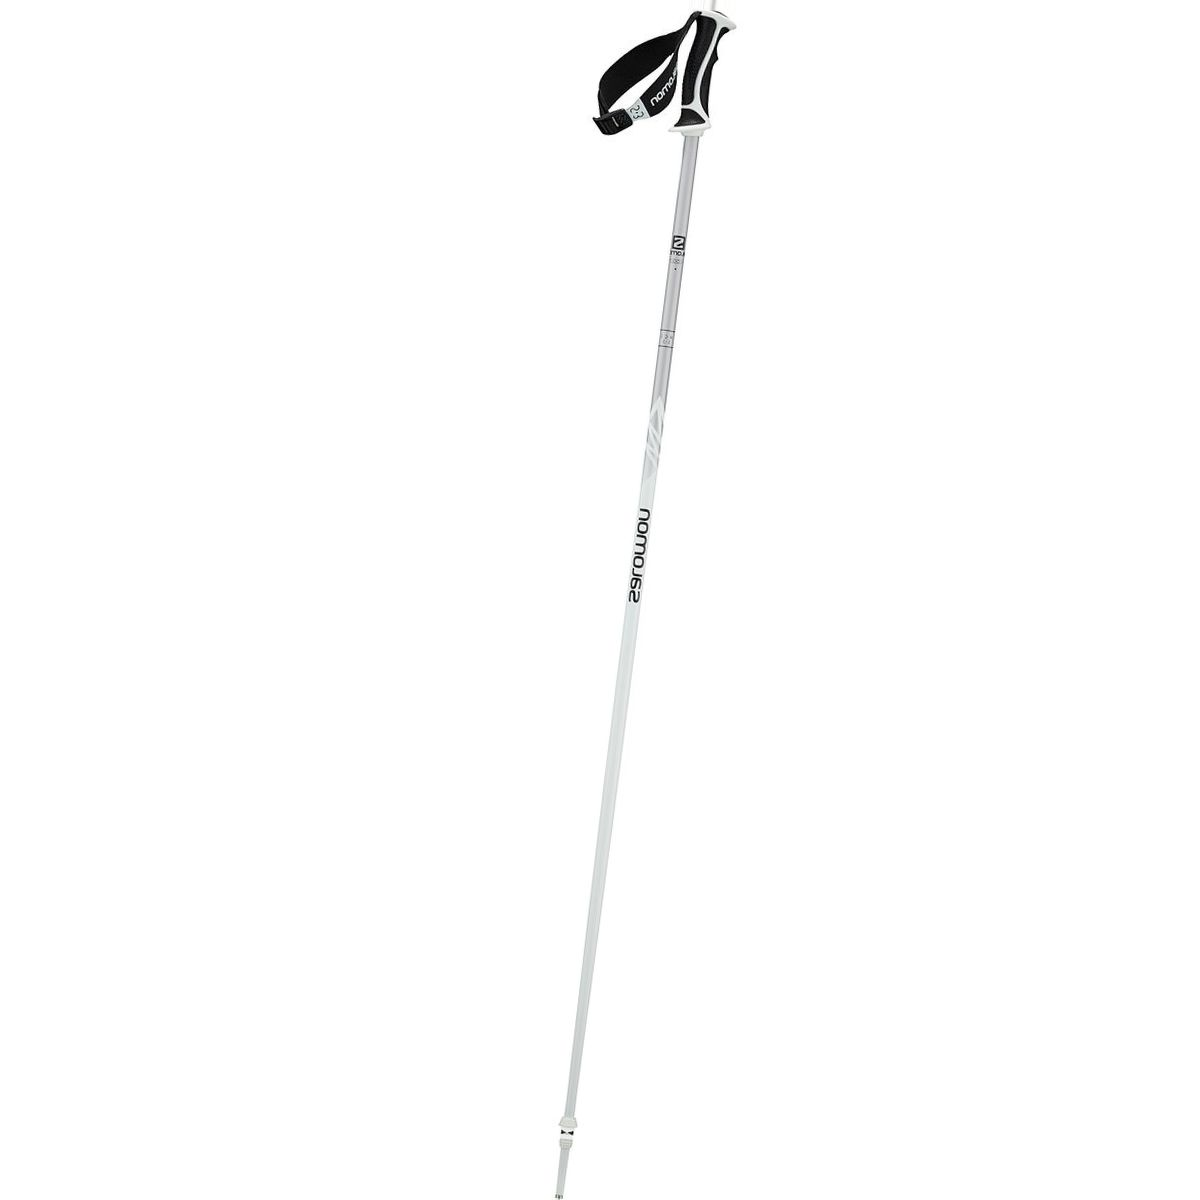 Salomon Angel S3 Ski Poles - Women's